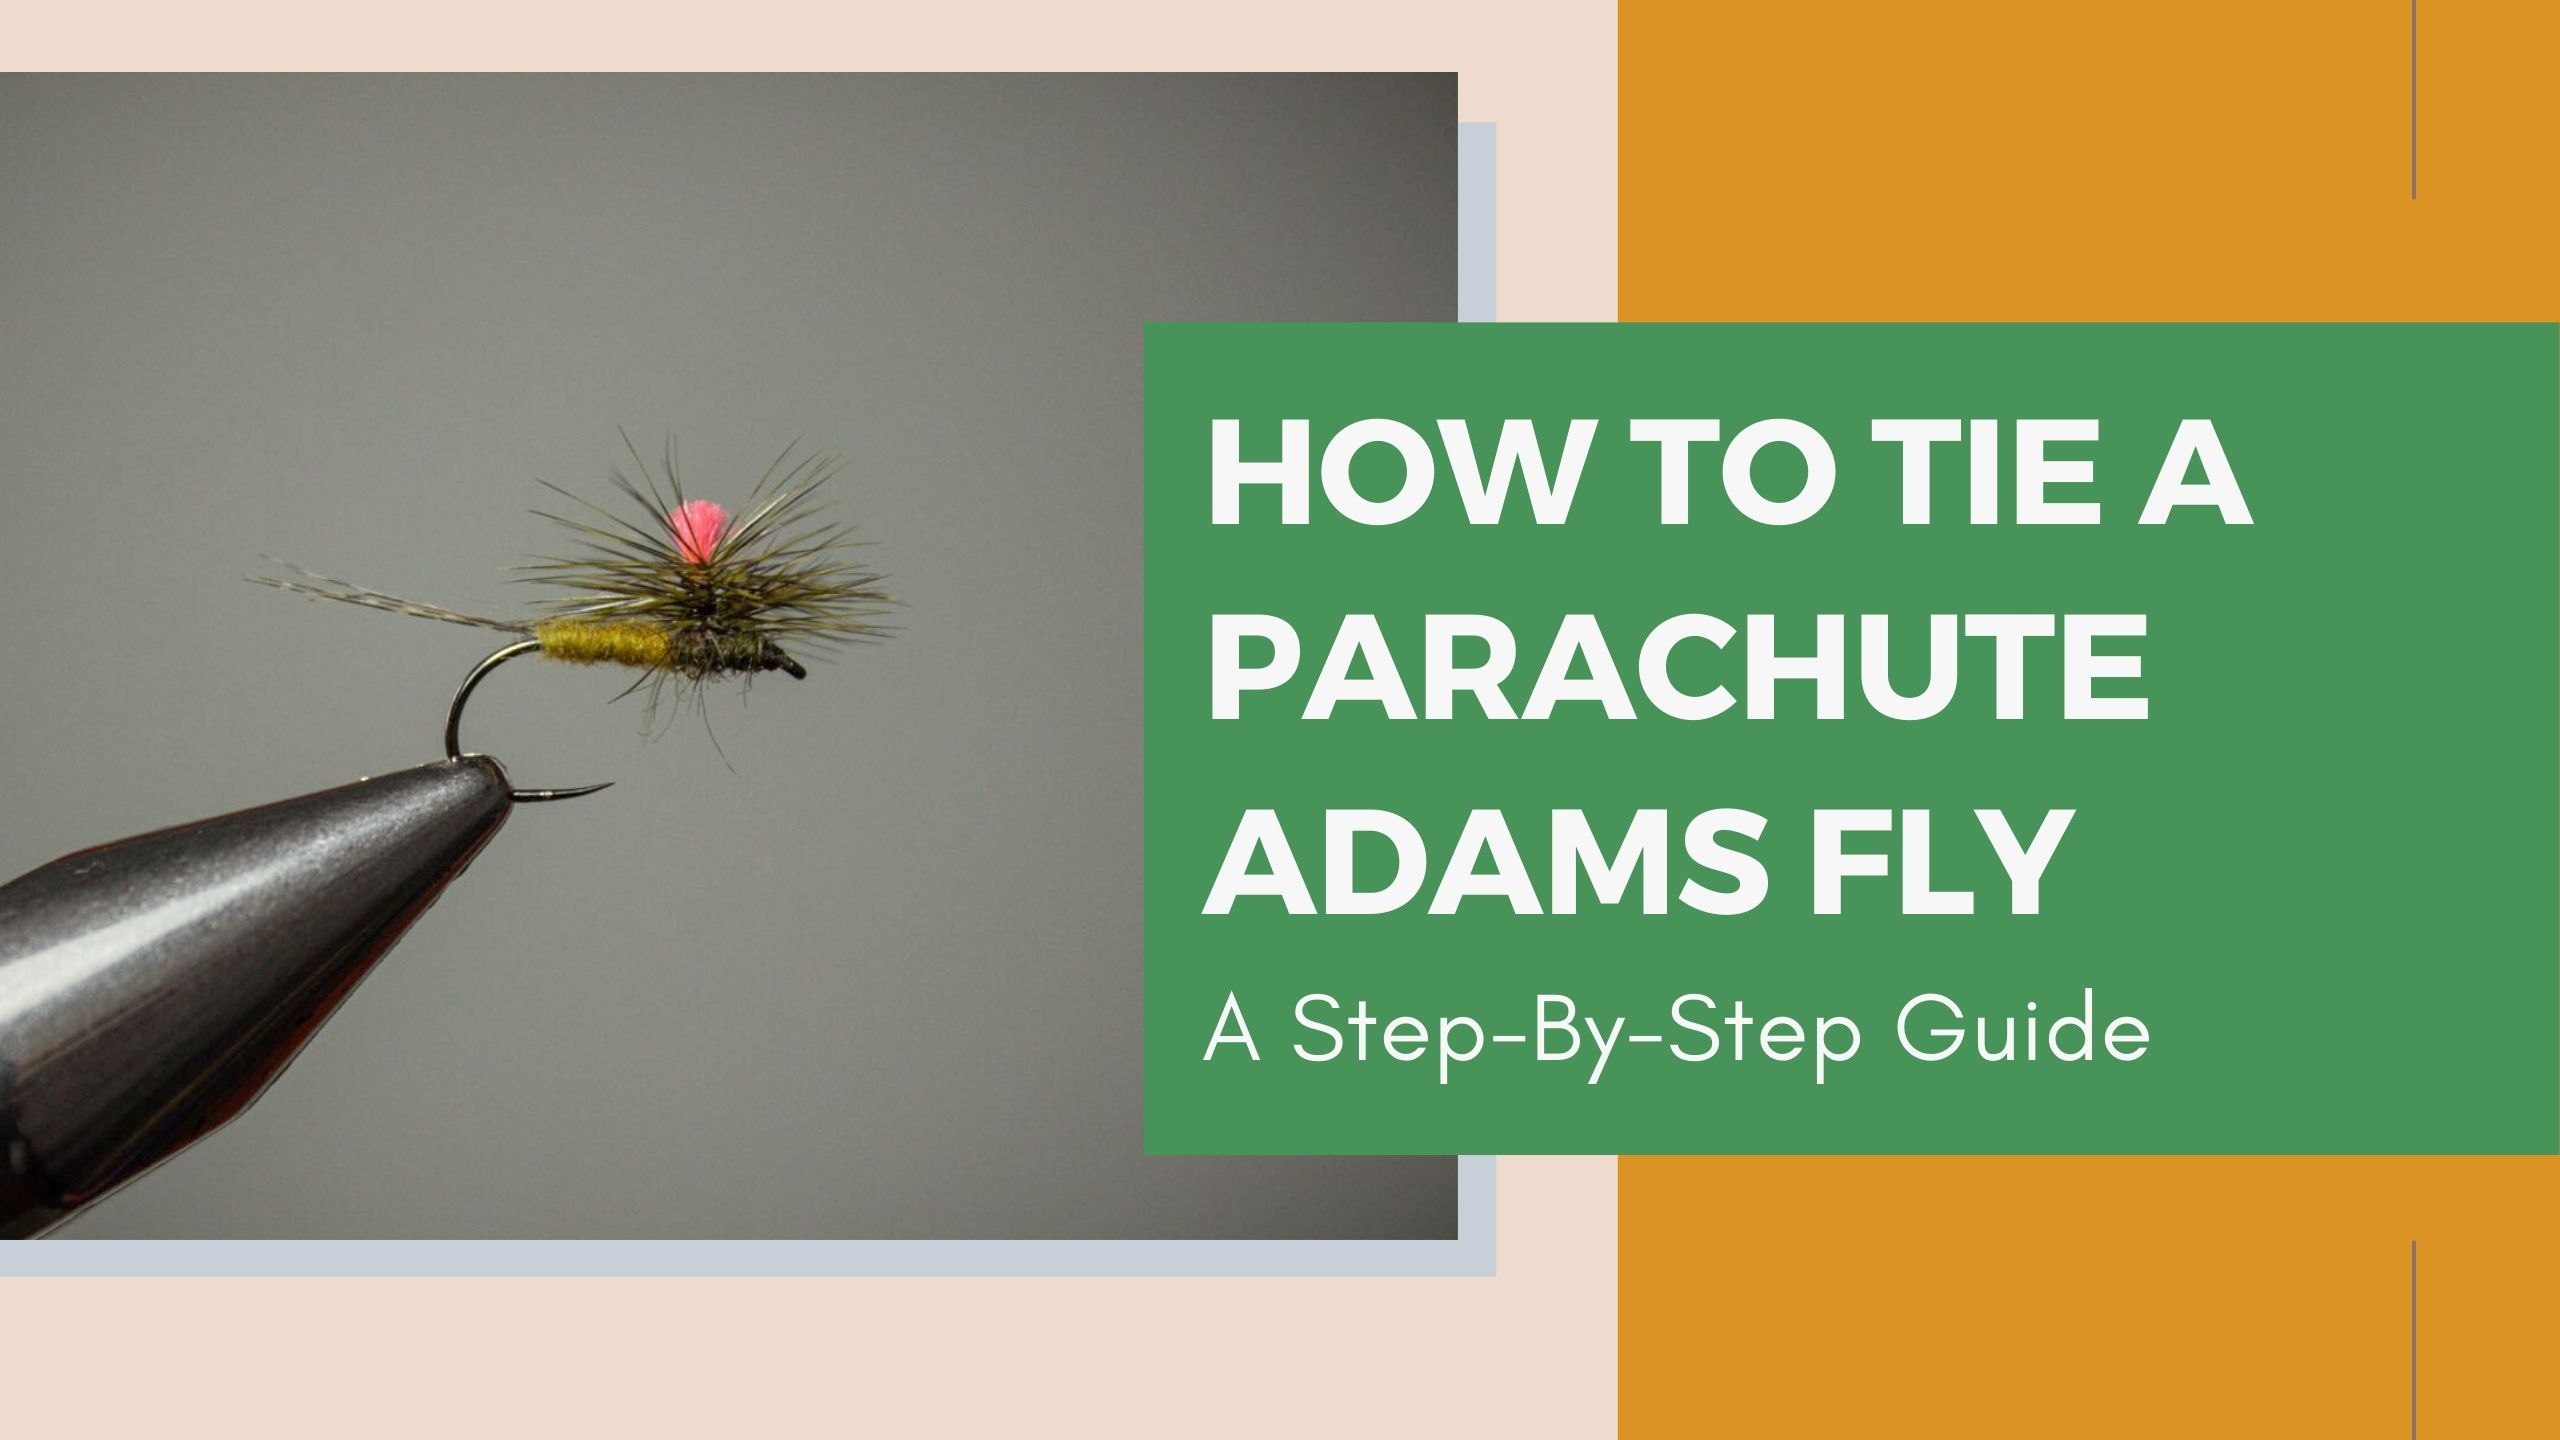 How To Tie a Parachute Adams Fly Video Thumbnail